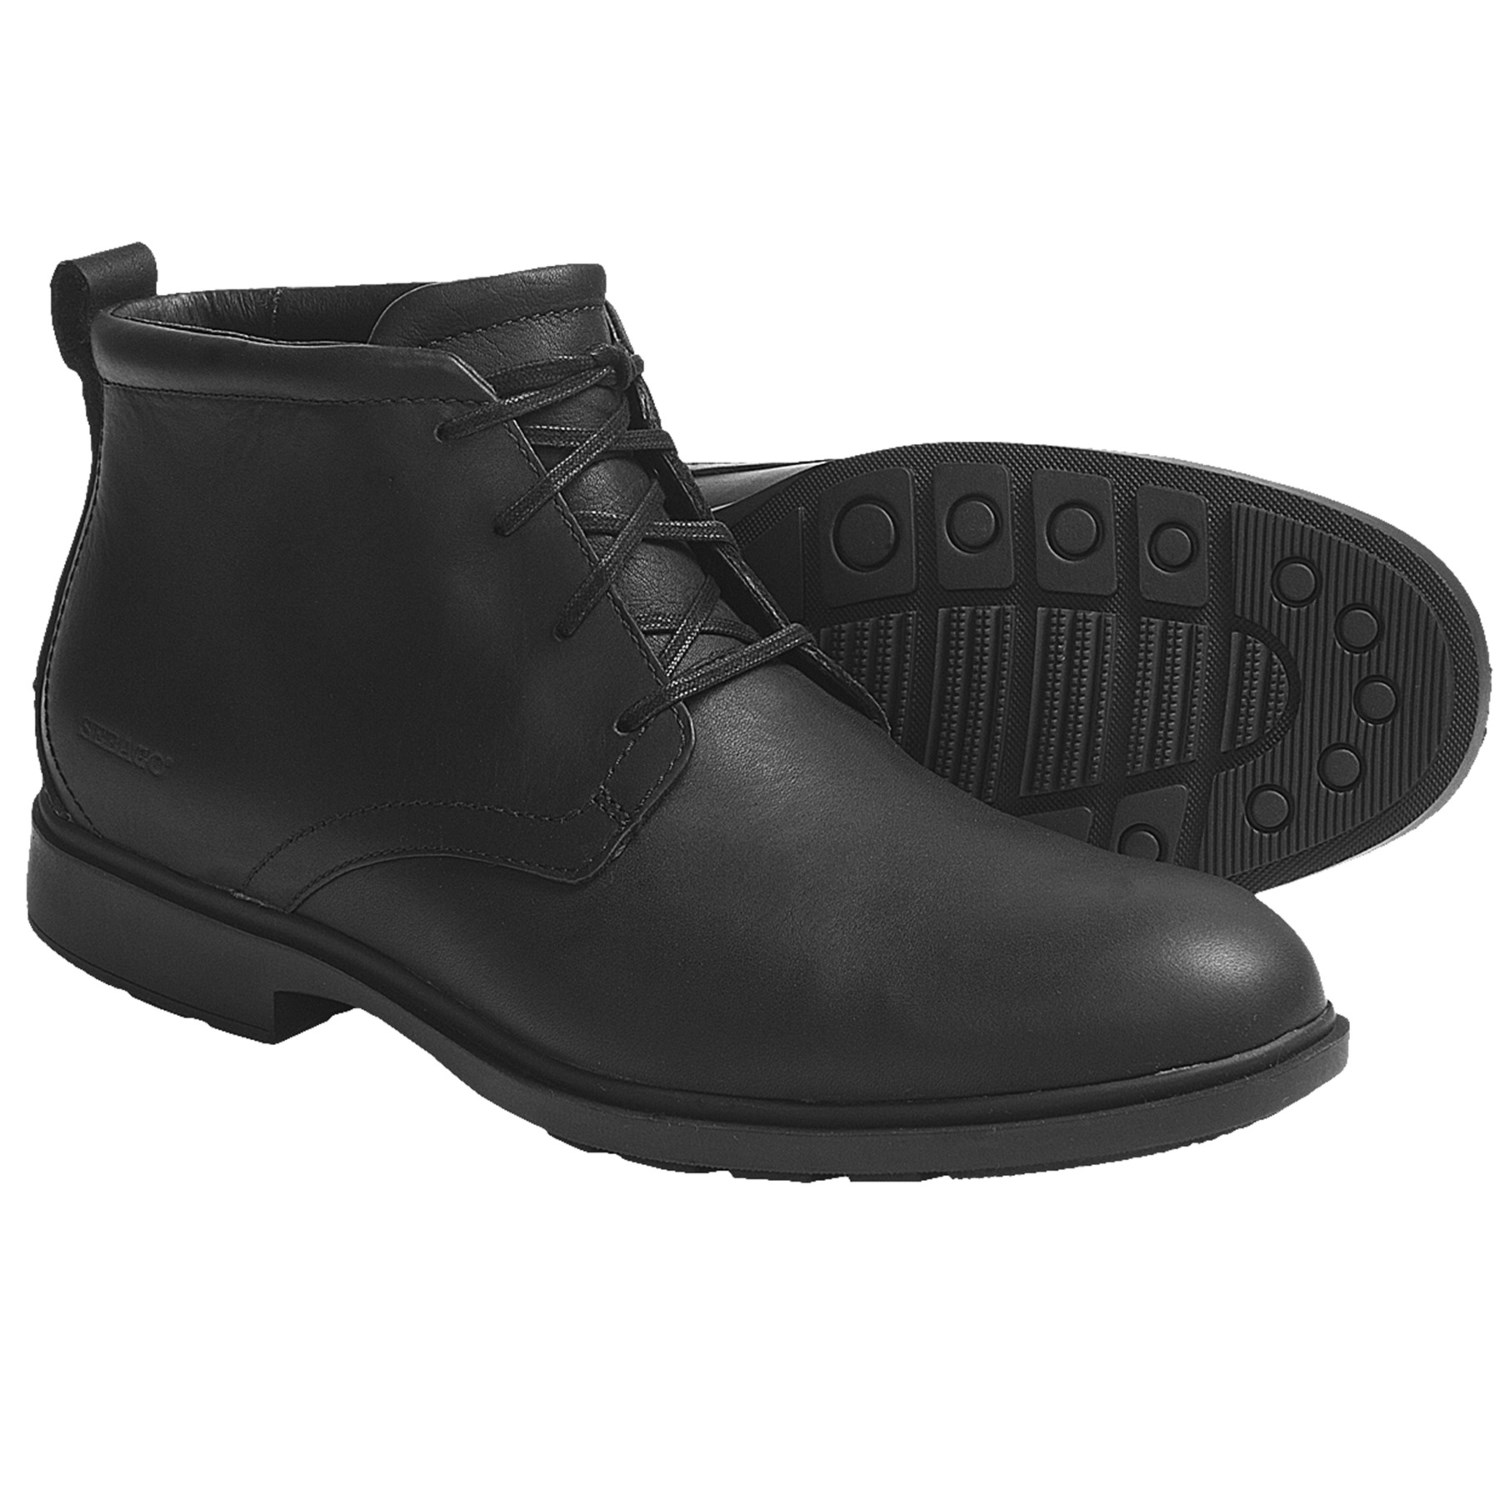 Leather Lace Up Boots For Men Images Decorating Ideas